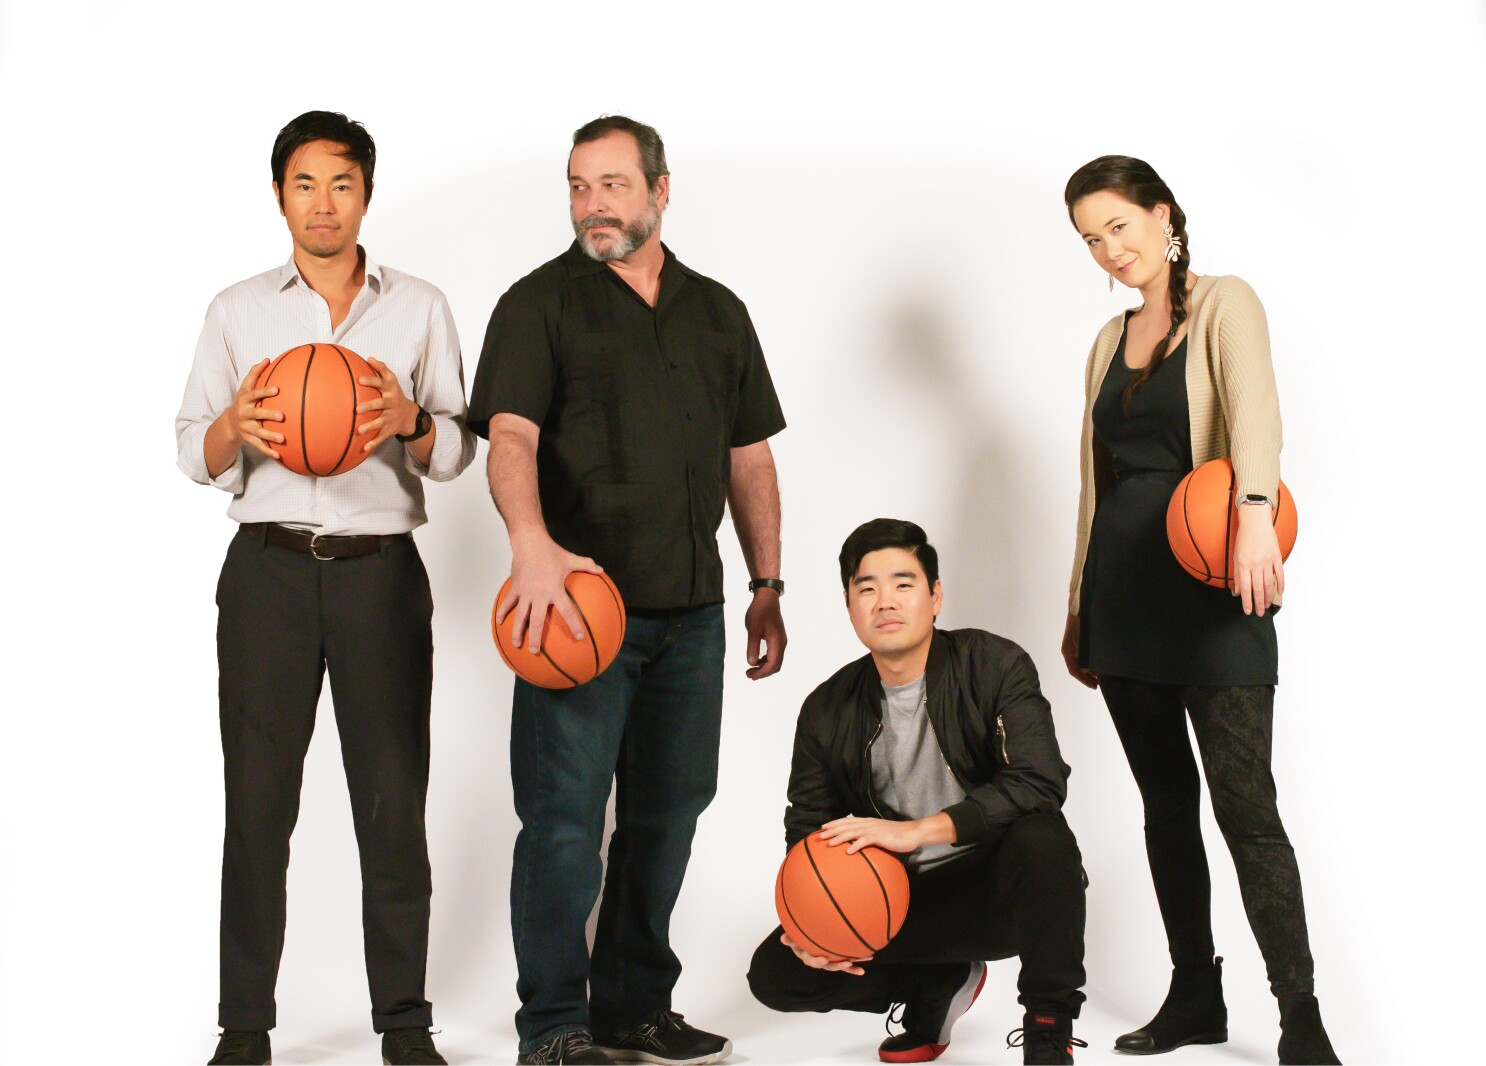 Hoop dreams and clashing cultures take center court with Cygnet Theatre's local debut of 'The Great Leap'